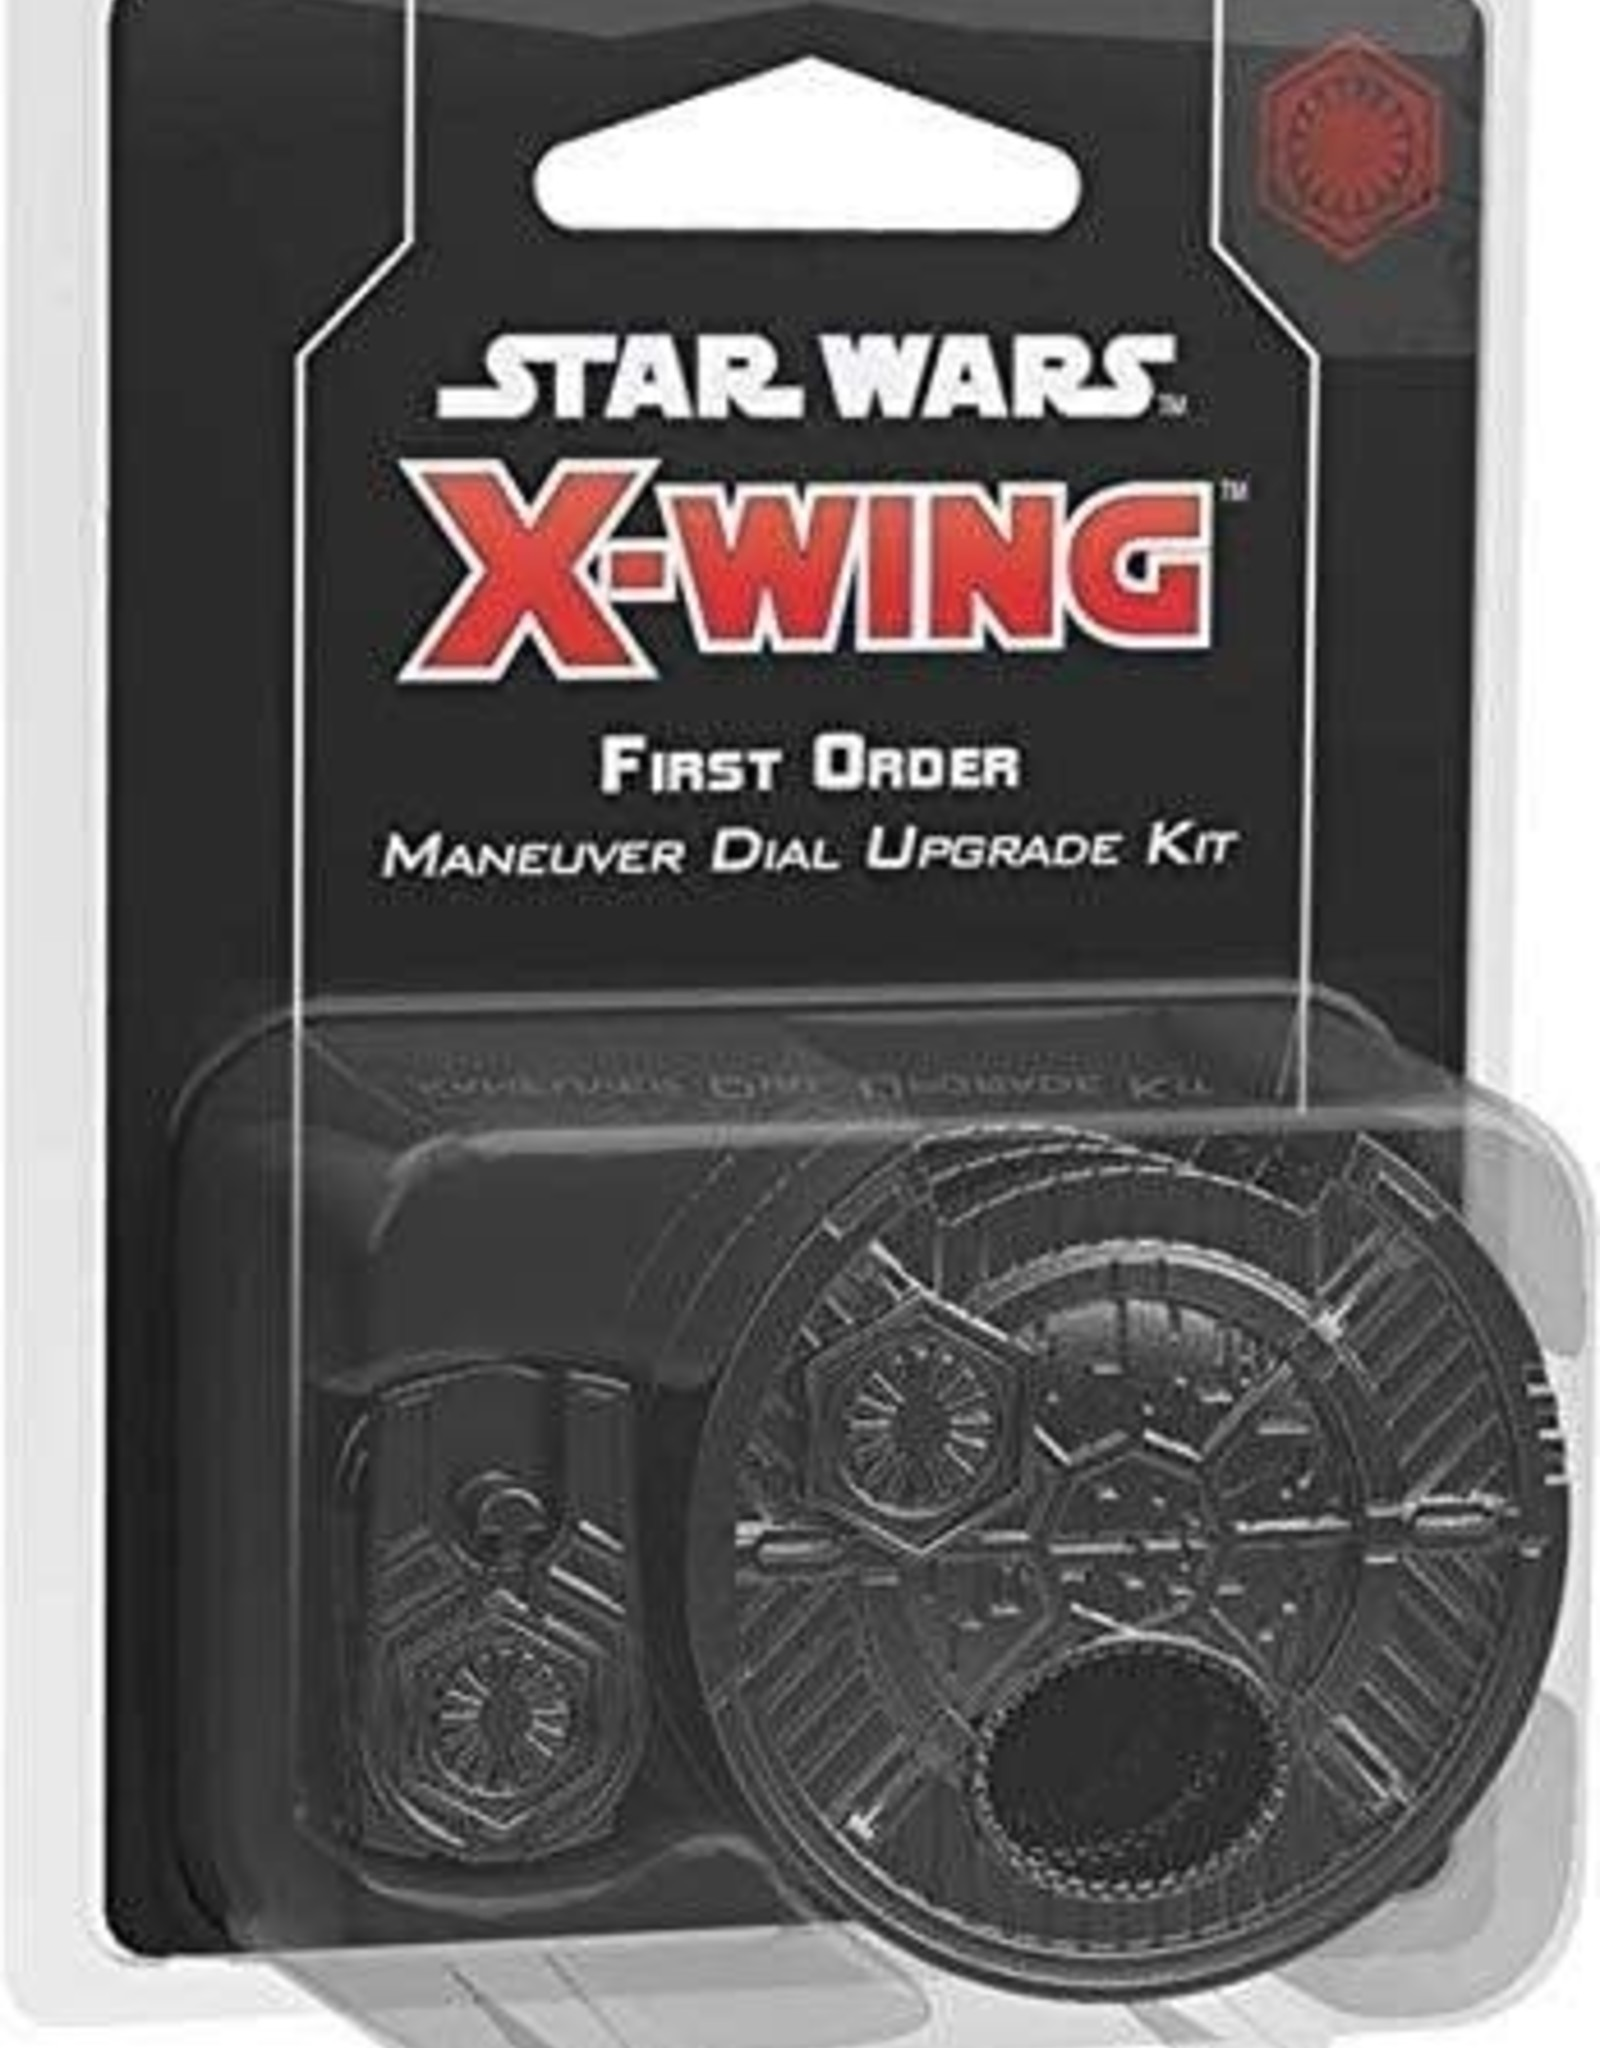 Star Wars X-Wing: 2nd Edition First Order Maneuver Dial Upgrade Kit